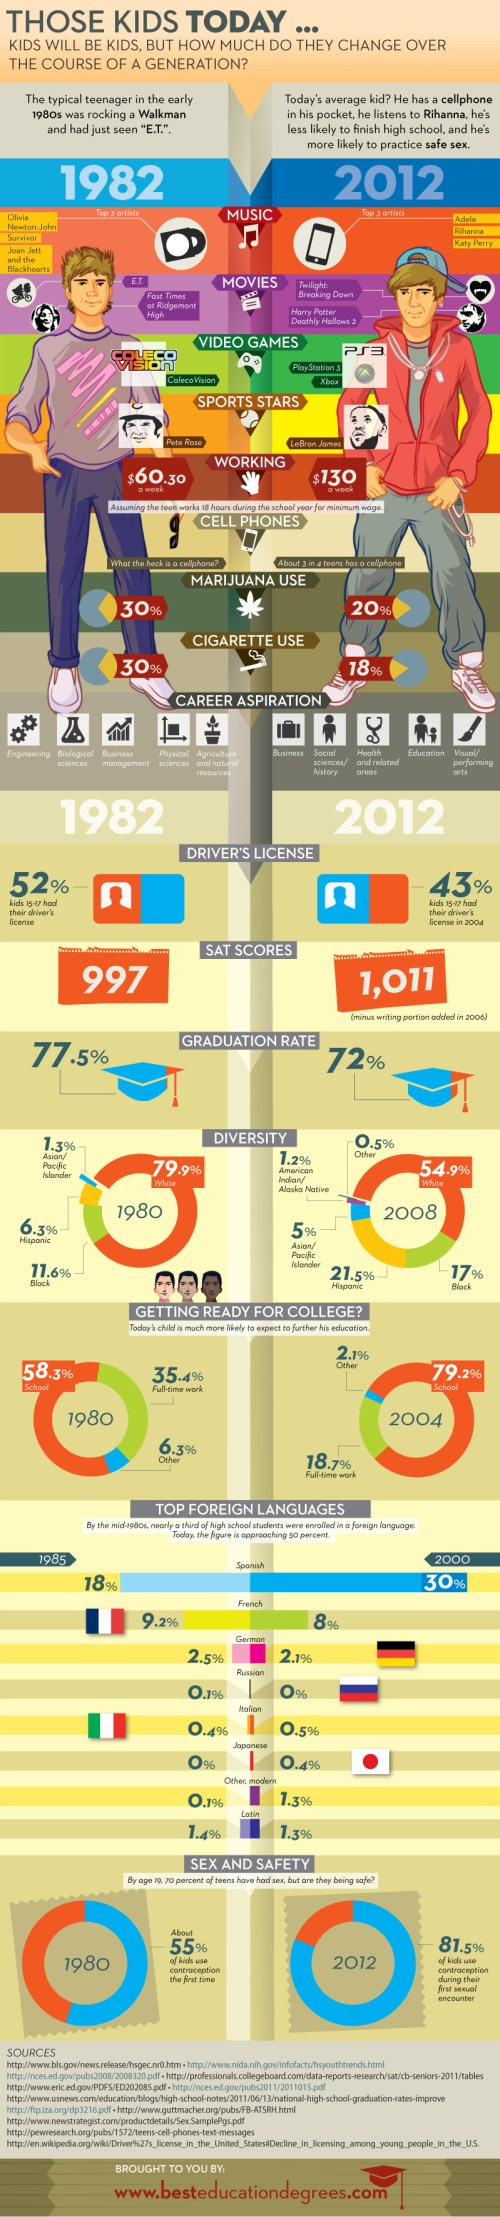 Then vs Now: How Things Have Changed from 1982 to 2012